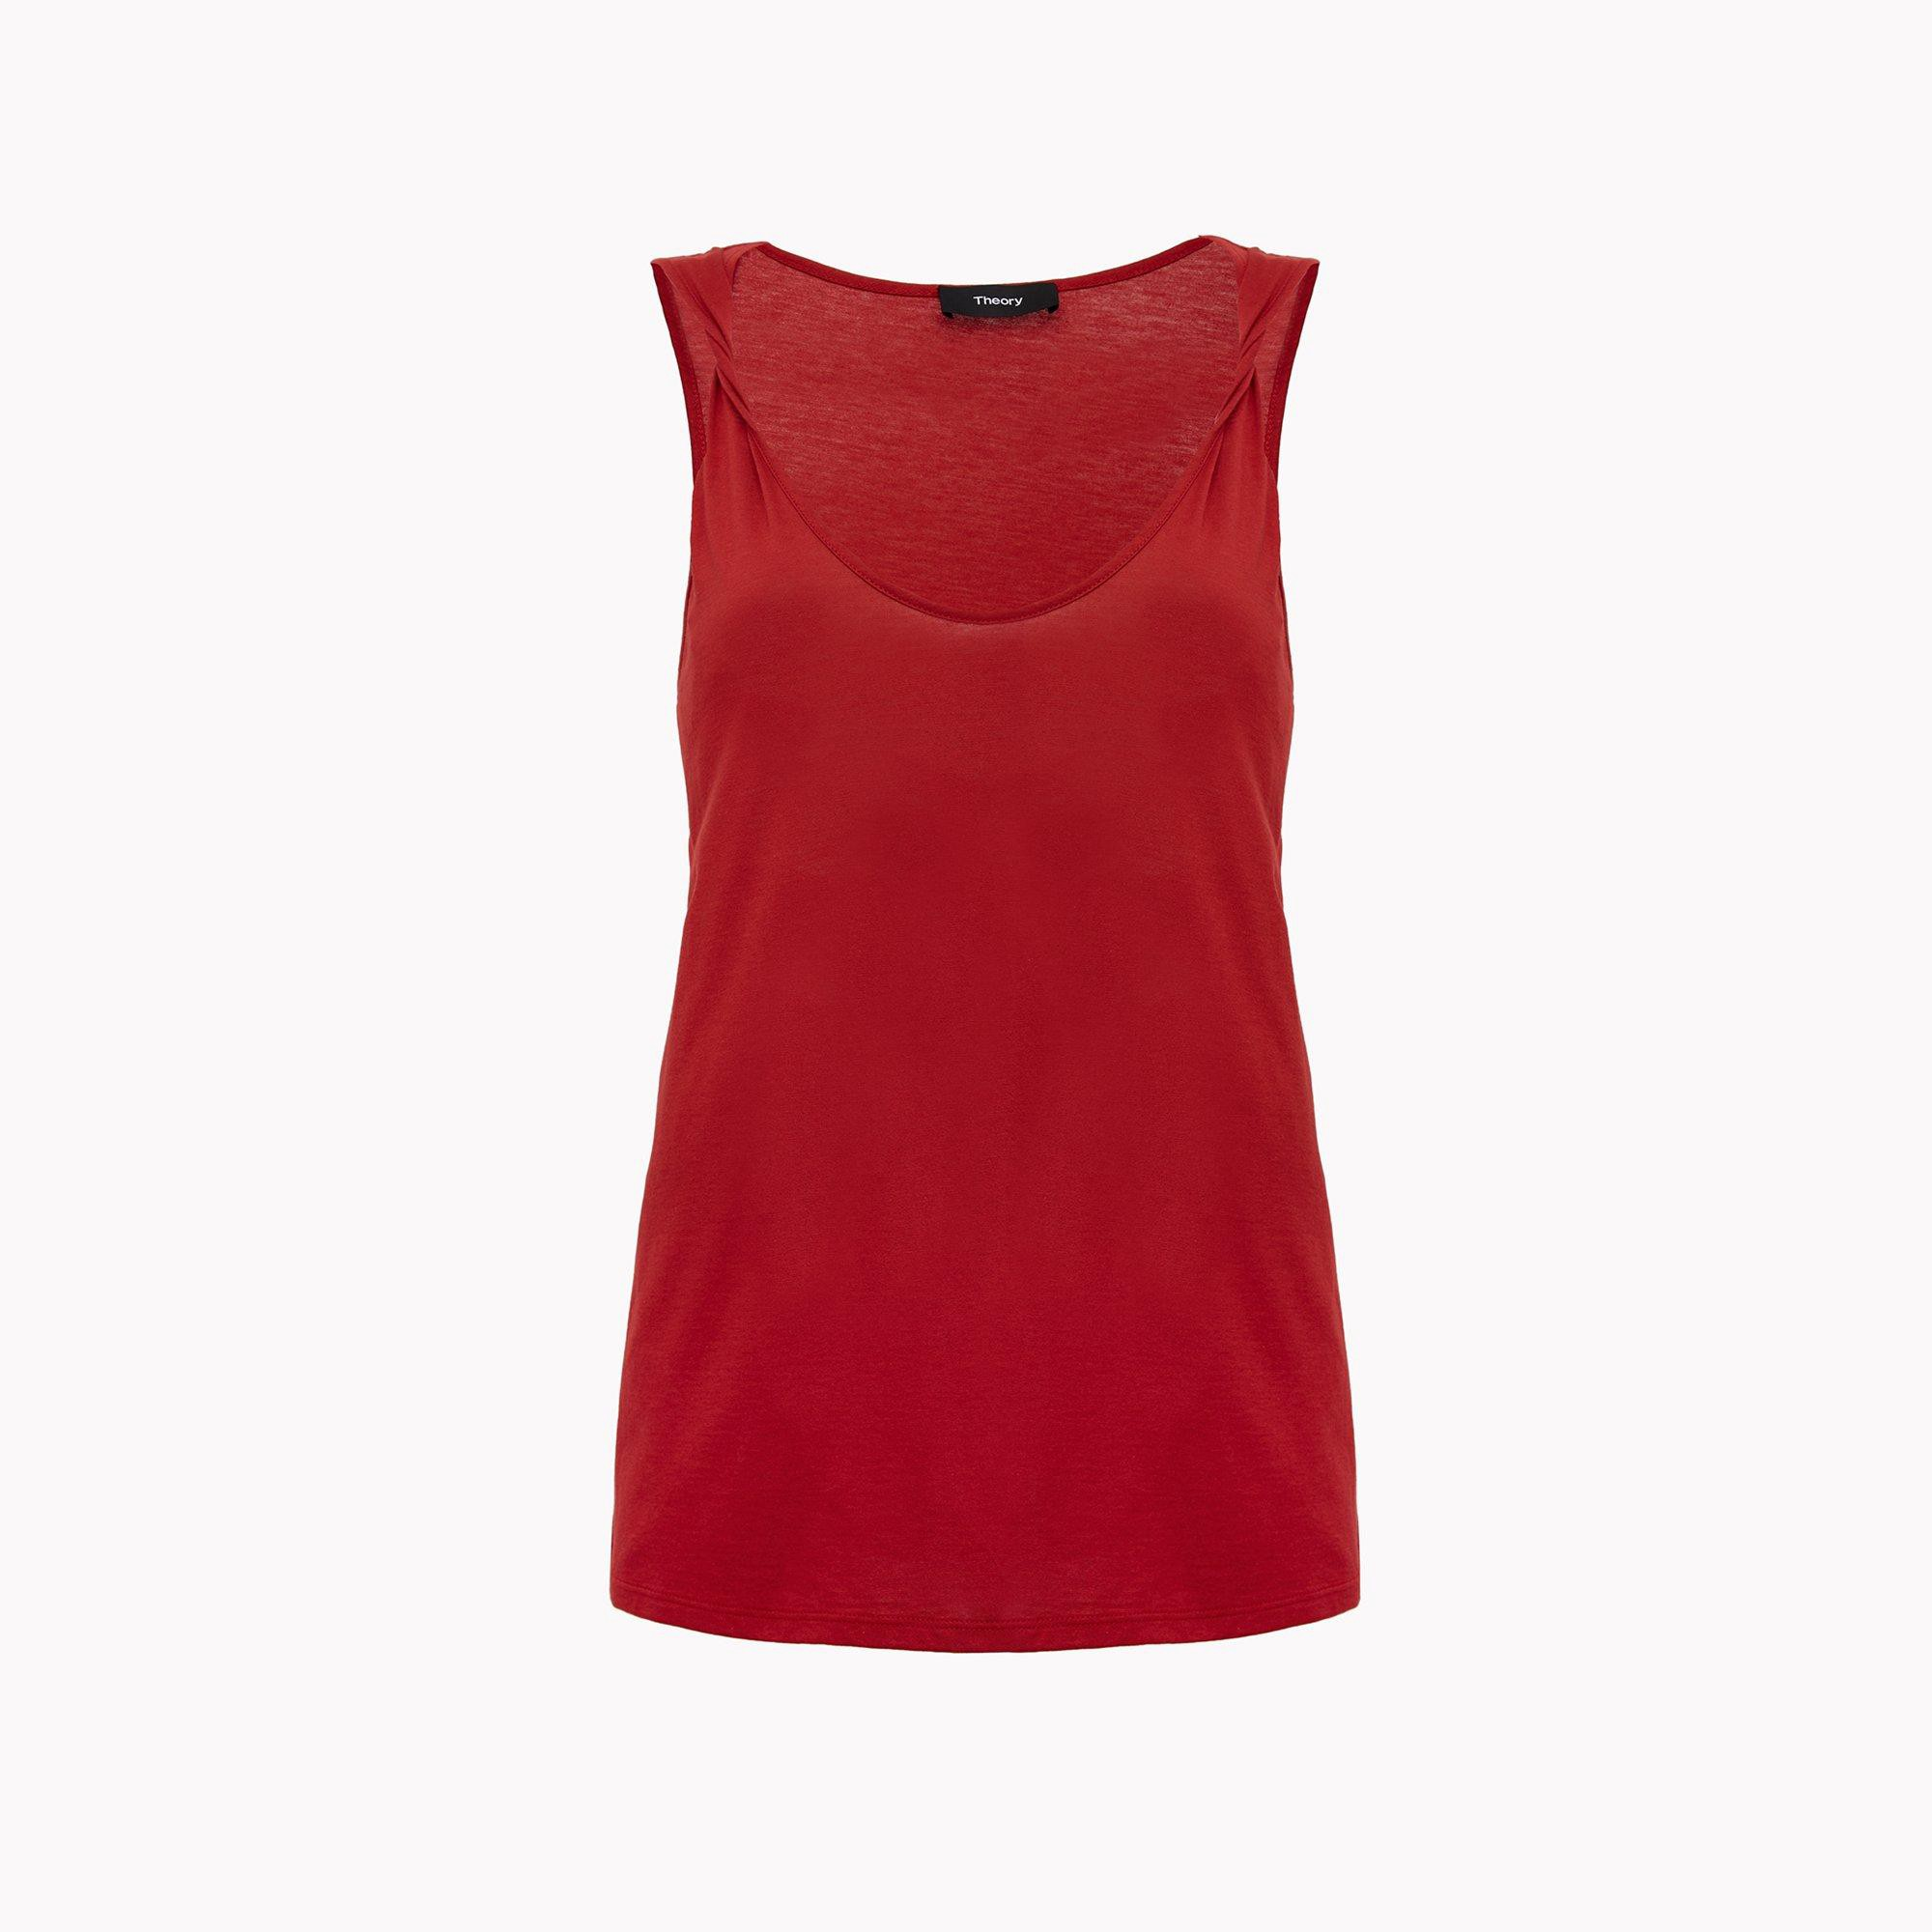 THEORY Twisted Strap Tank - Crimson Red